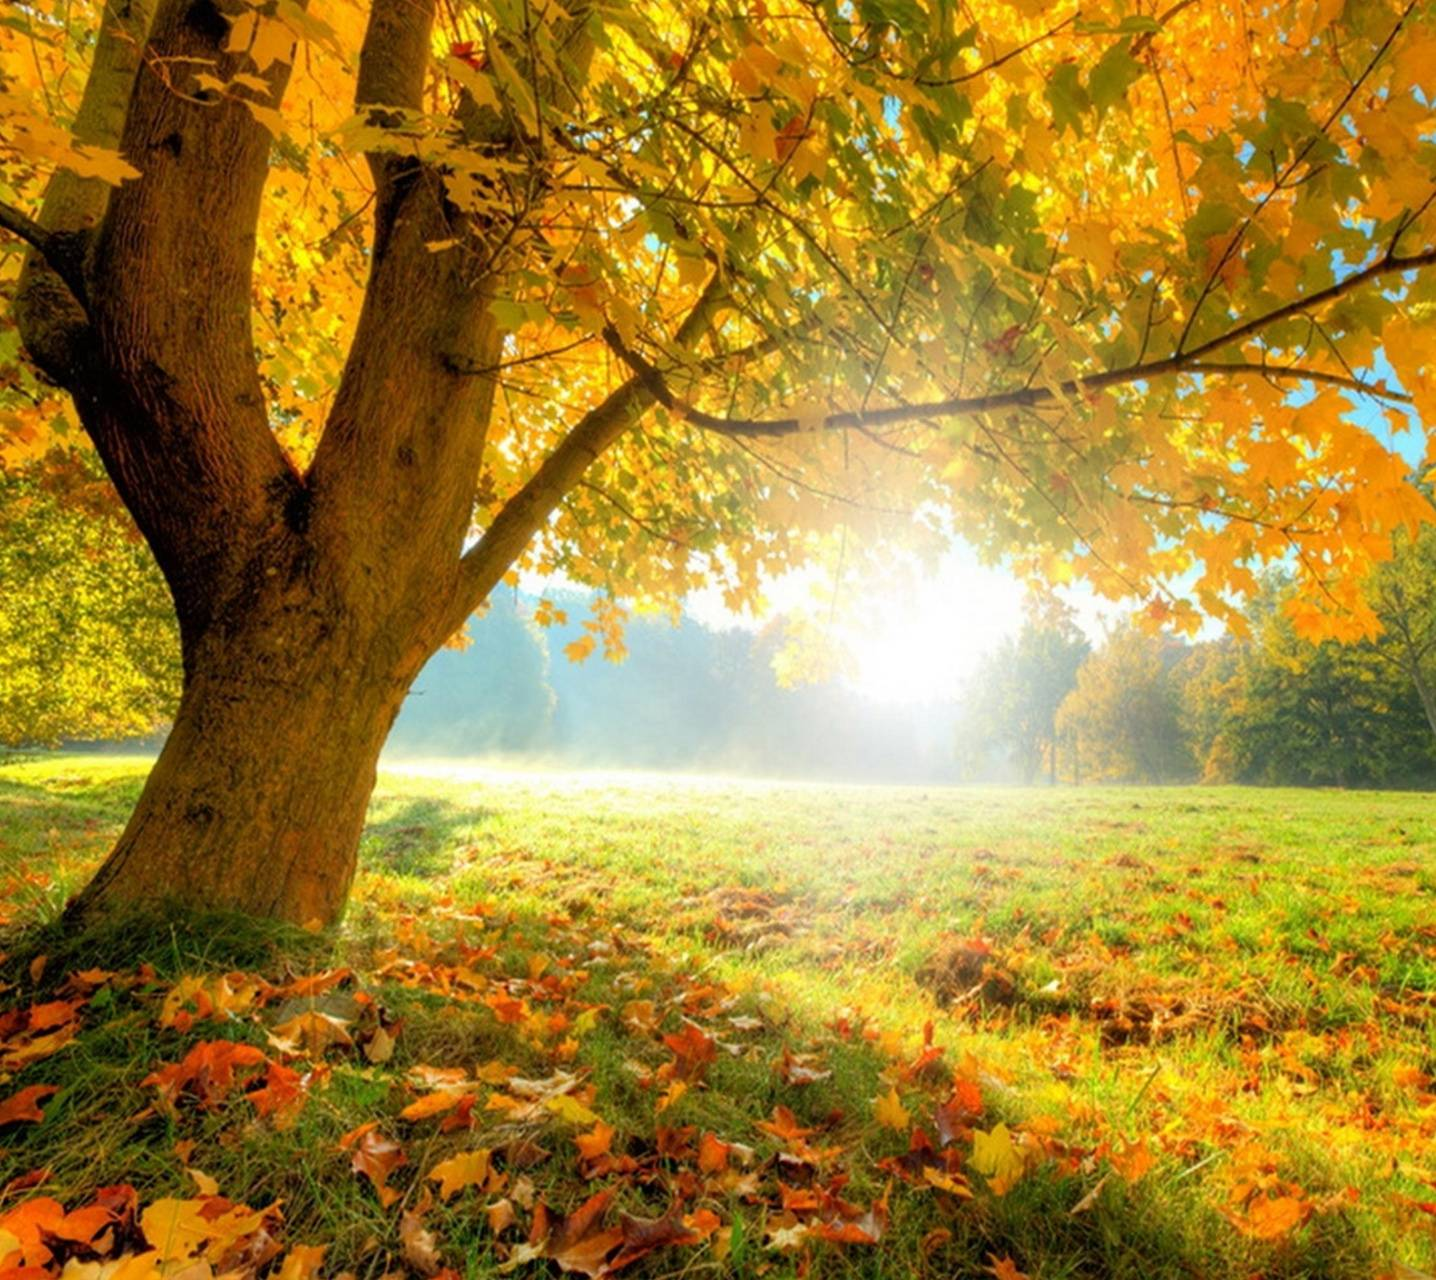 Autumn Equinox Wallpaper By Shrubel1 Eb Free On Zedge